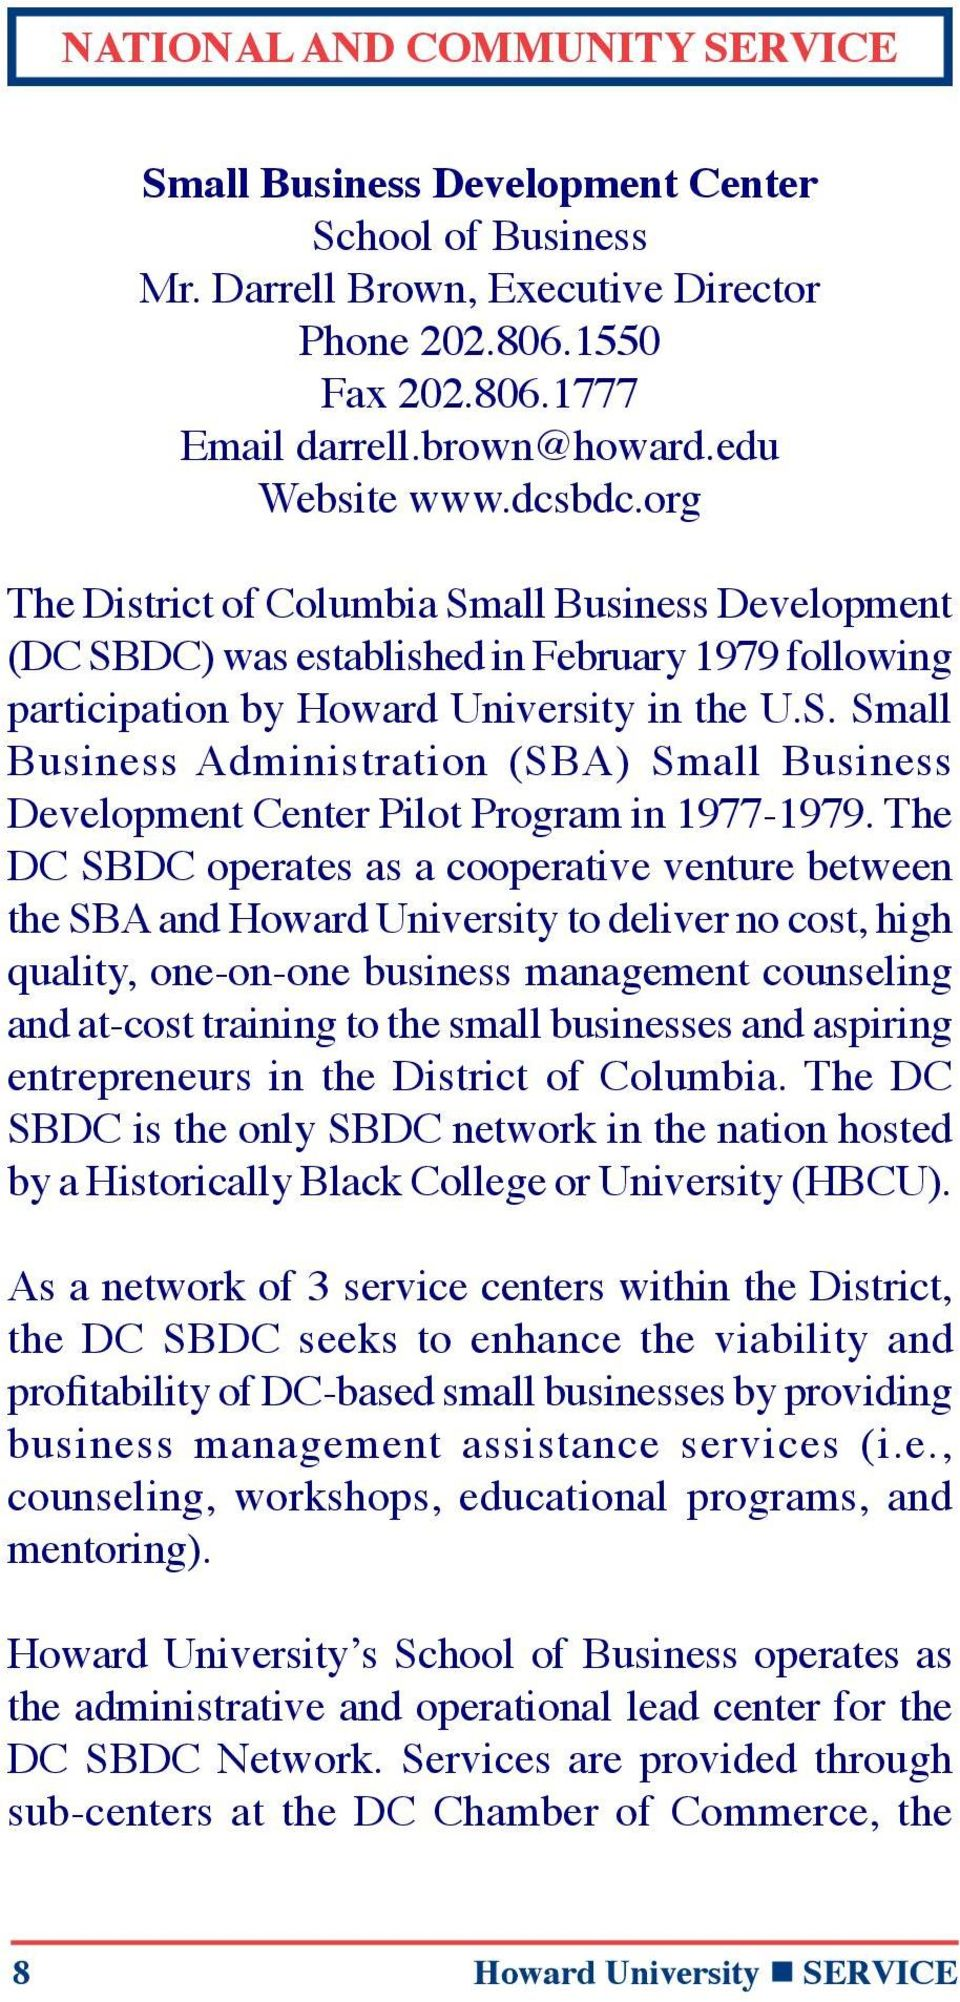 The DC SBDC operates as a cooperative venture between the SBA and Howard University to deliver no cost, high quality, one-on-one business management counseling and at-cost training to the small